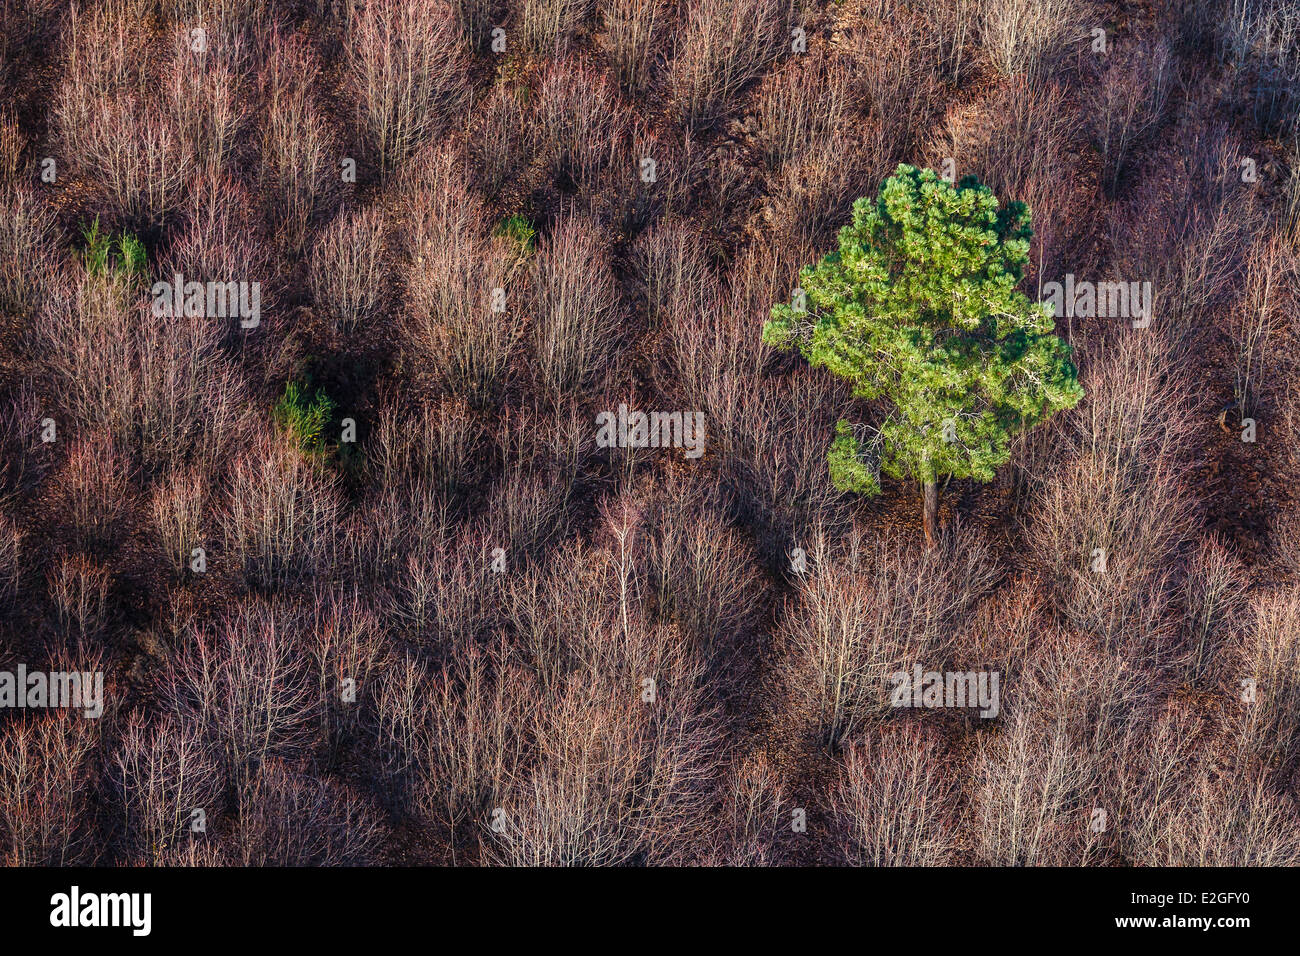 France Vendee Maille Bourneau maritime pine tree surrounded by deciduous trees in winter (aerial view) - Stock Image